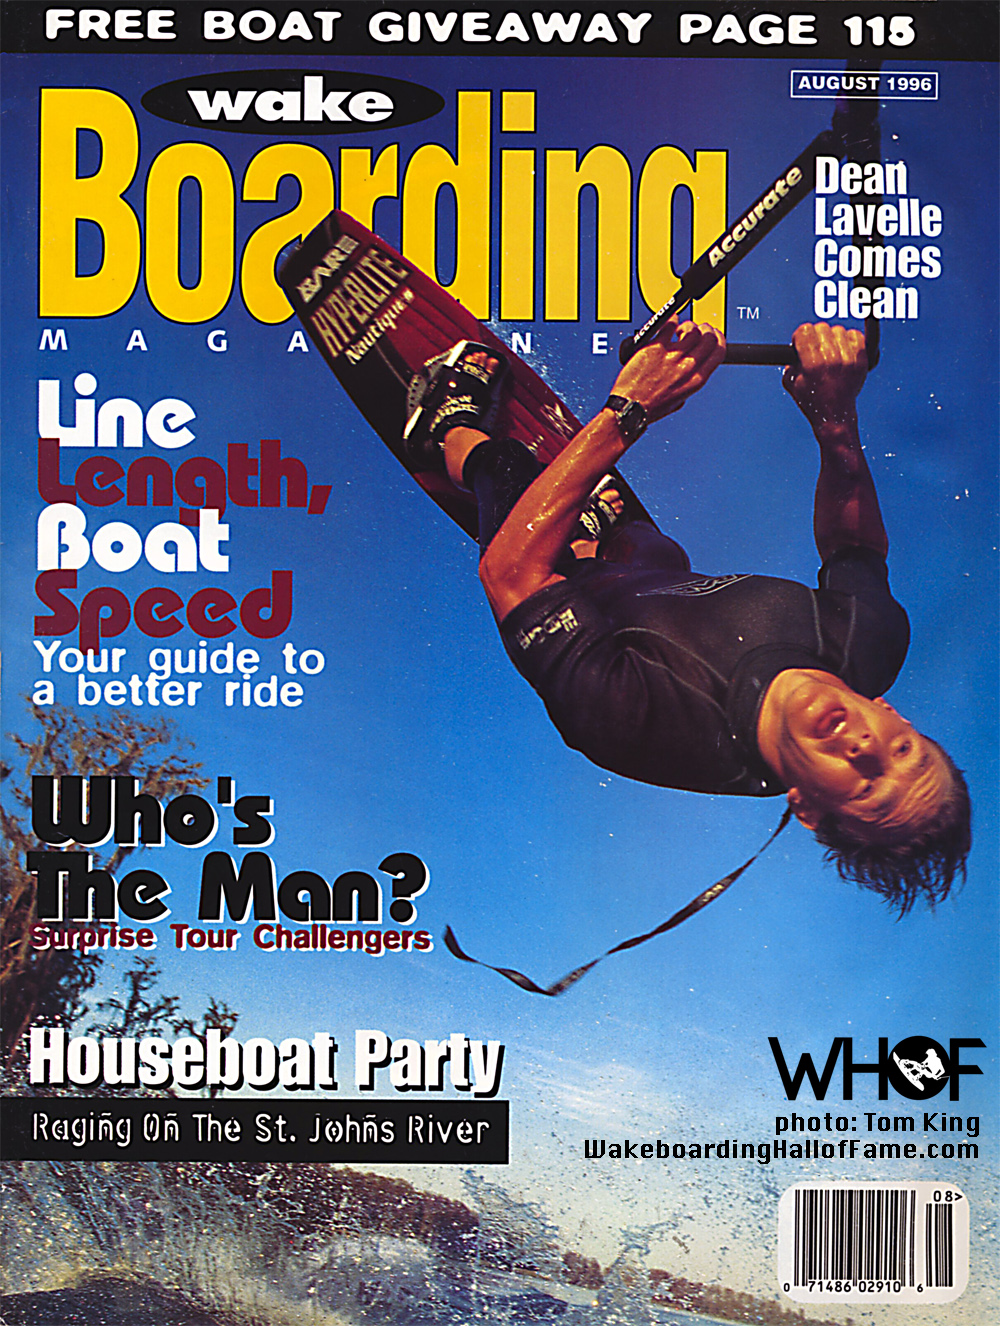 dean lavelle wakeboarding magazine cover world champion who